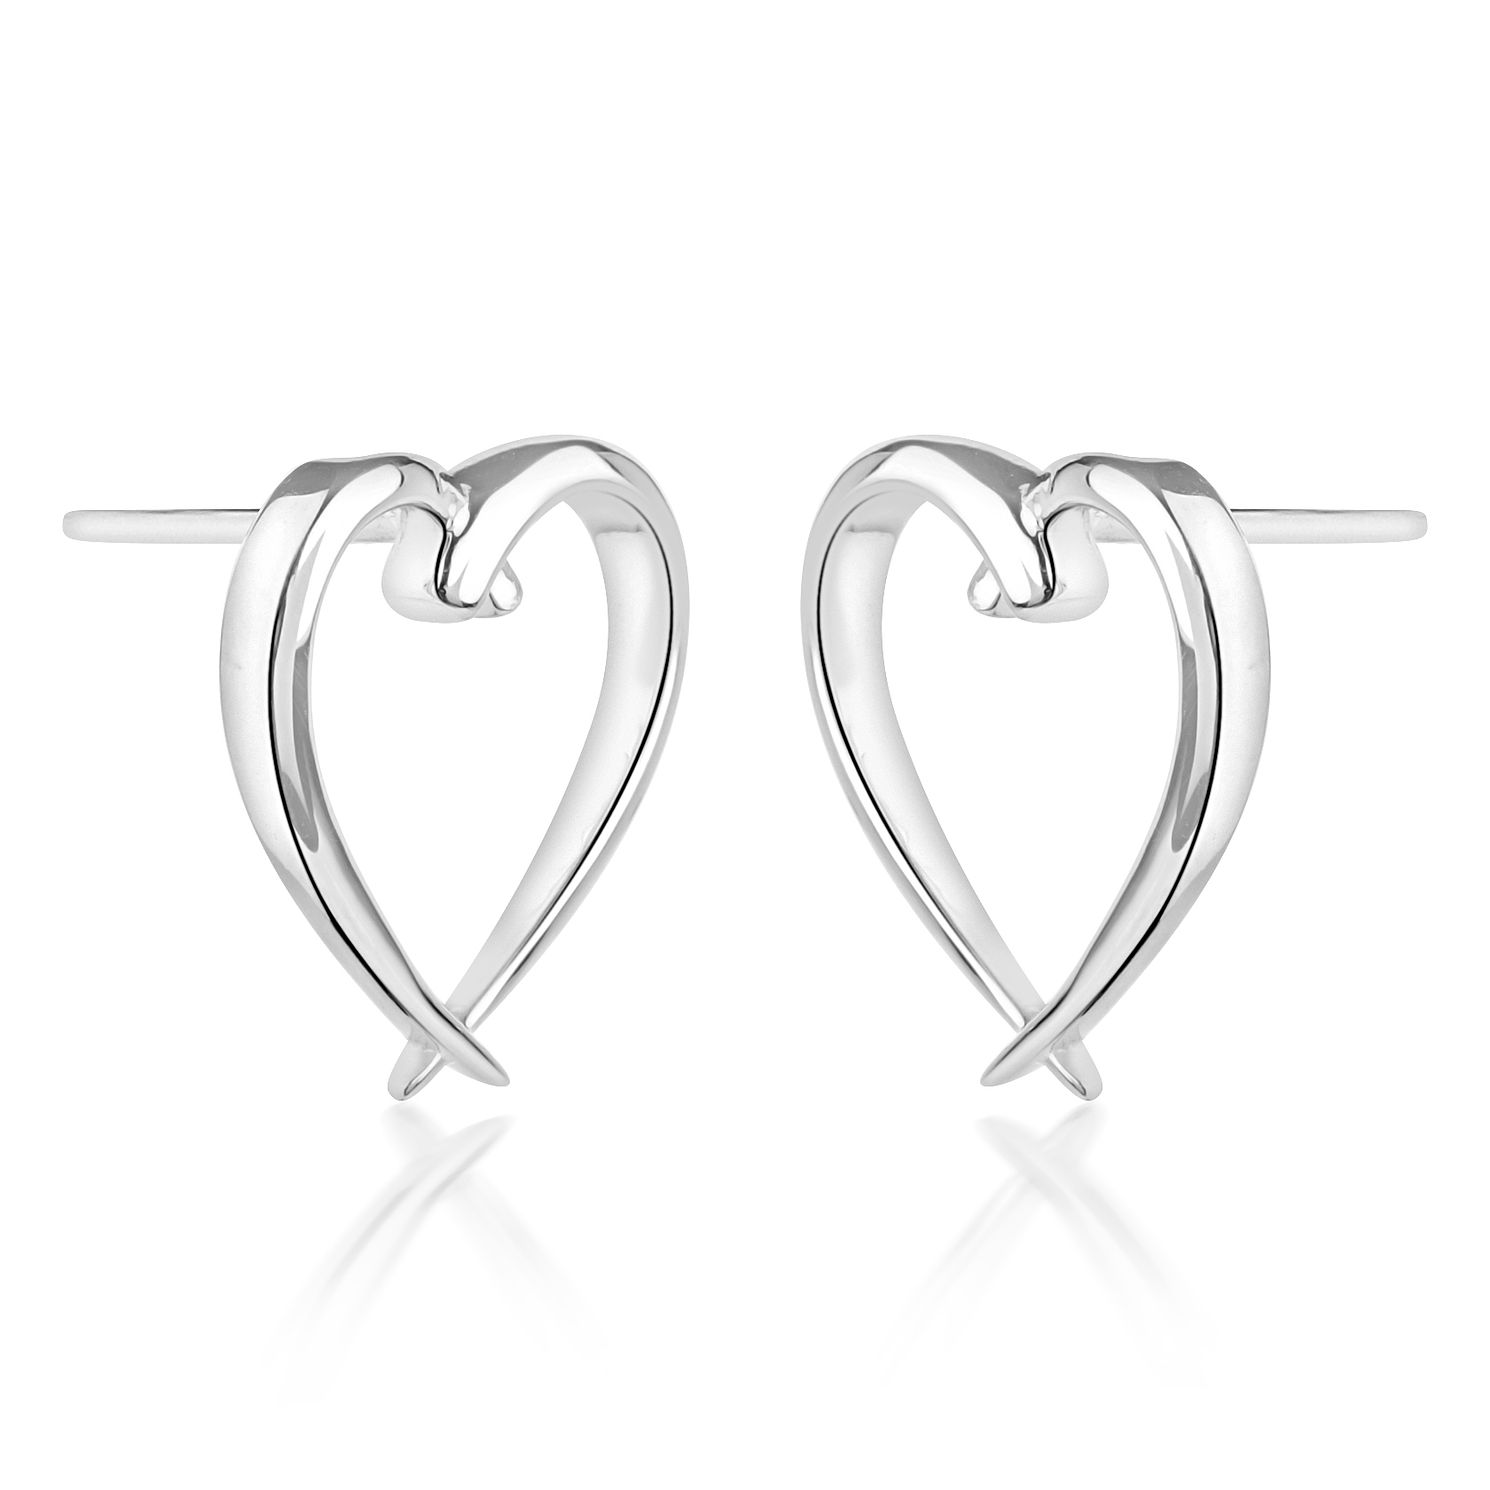 Rachel Galley Silver 925 Molto Kiss Heart Stud Earrings - Product number 4419294